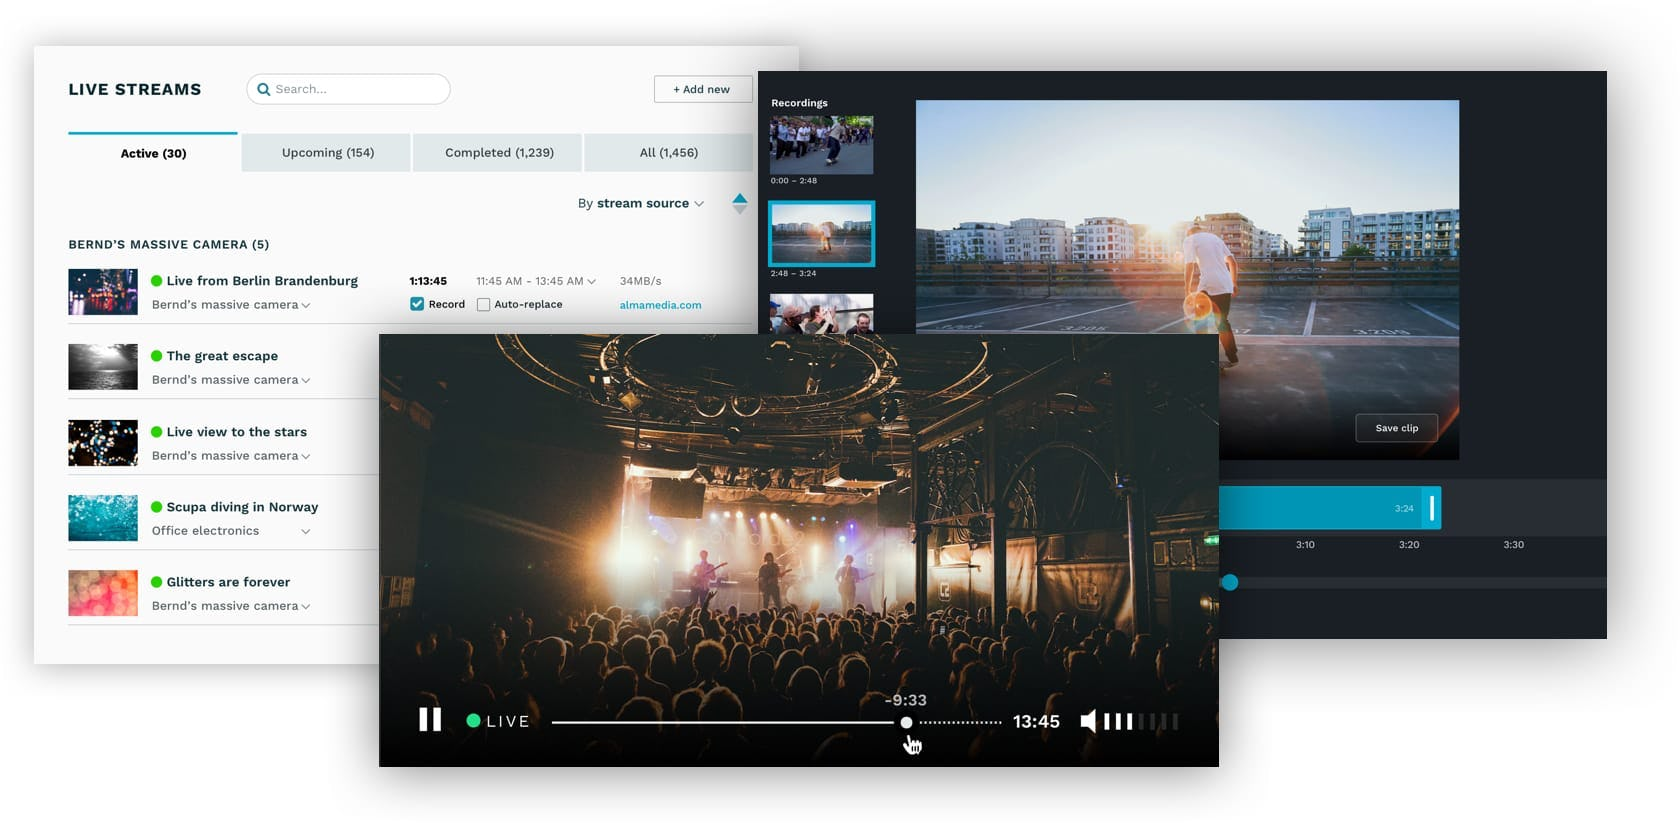 Live streaming features